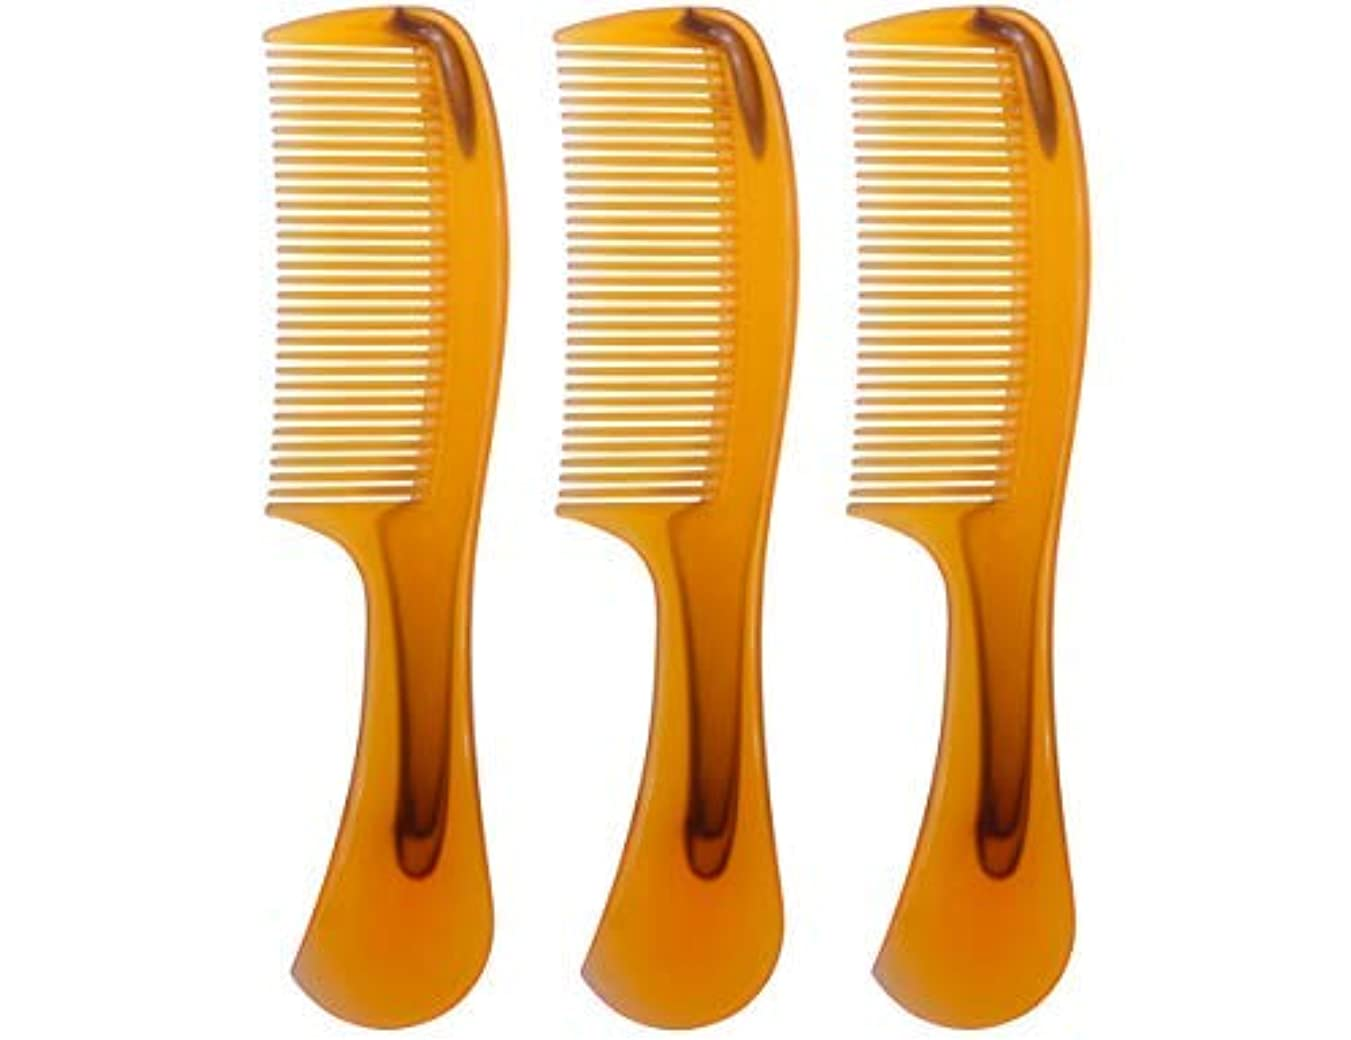 副長々とポーズLBY 3pcs 16 cm Hair Comb Round Handle Comb Hair Care Comb Plastic Yellow [並行輸入品]